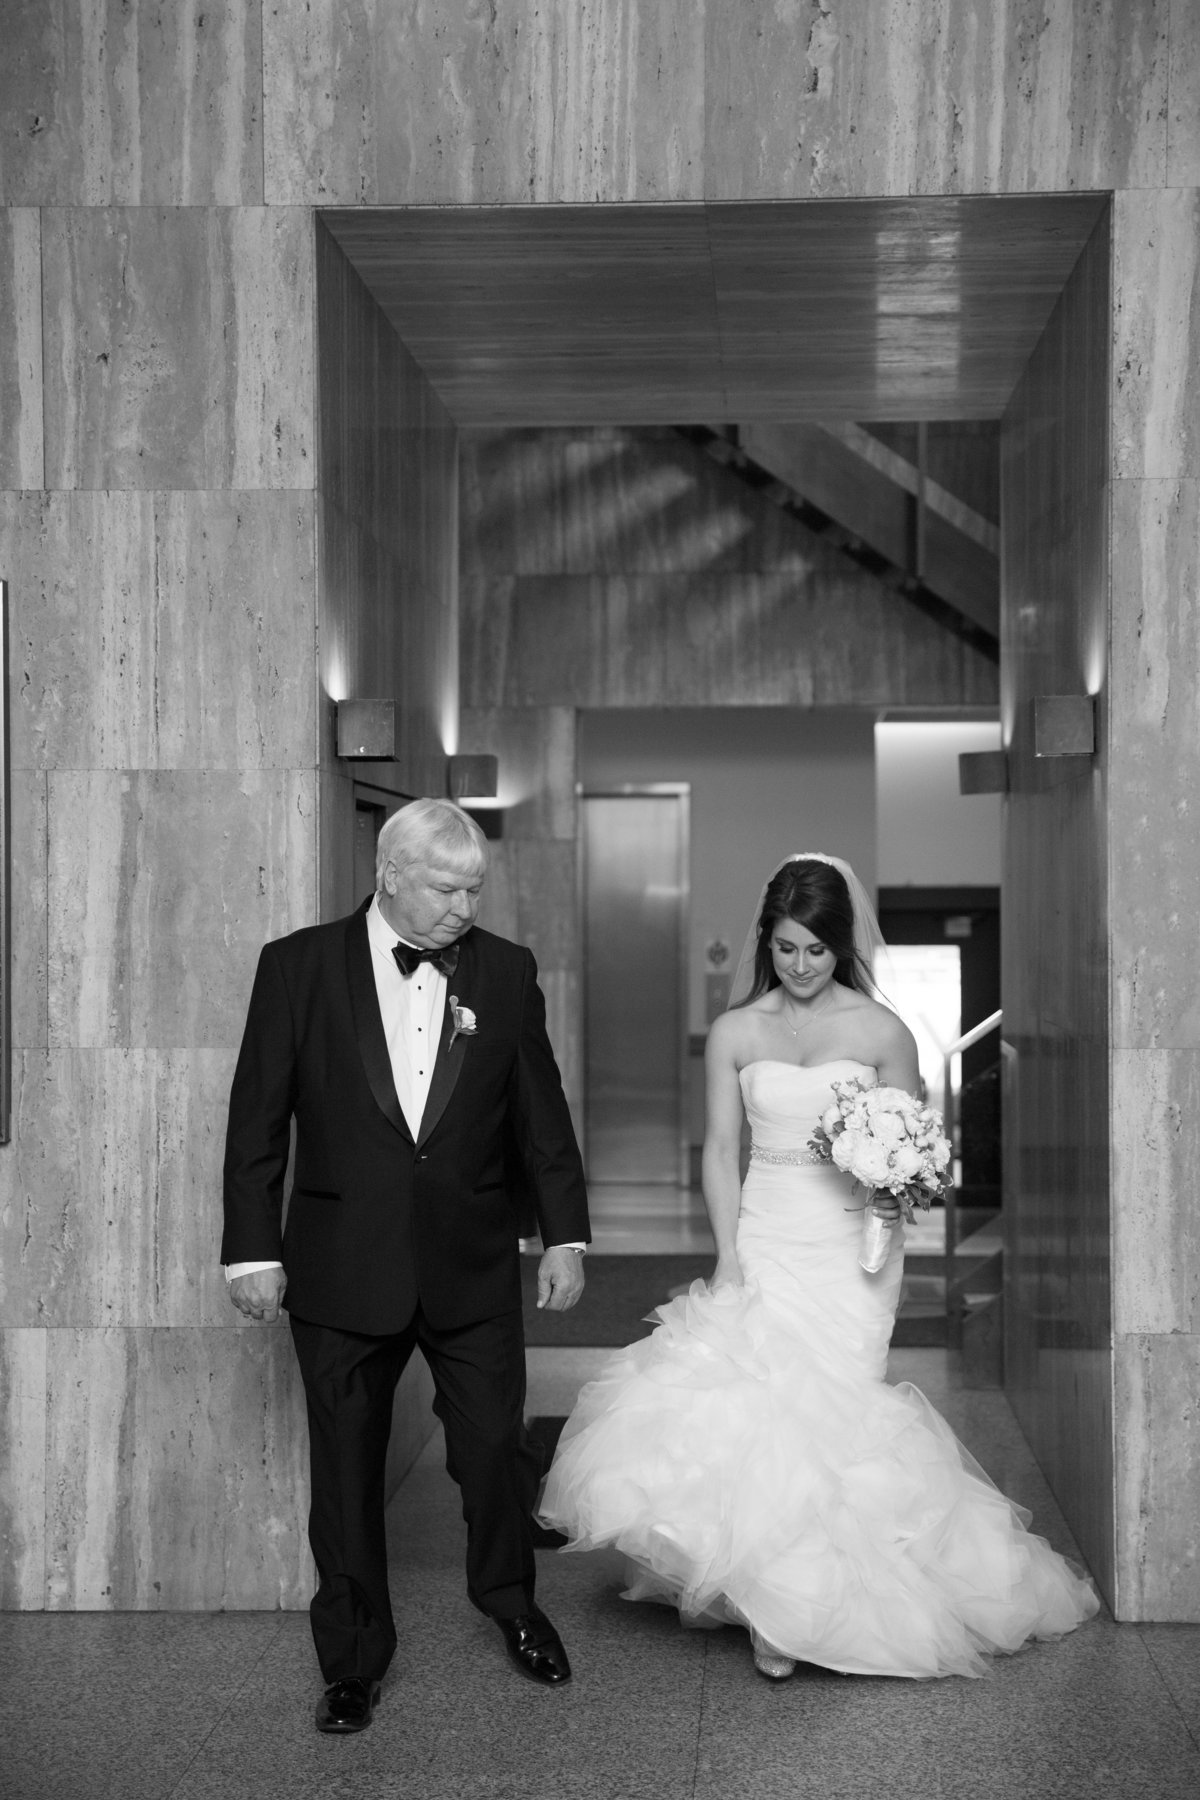 Nicole and Paul Wedding - Natalie Probst Photography 204